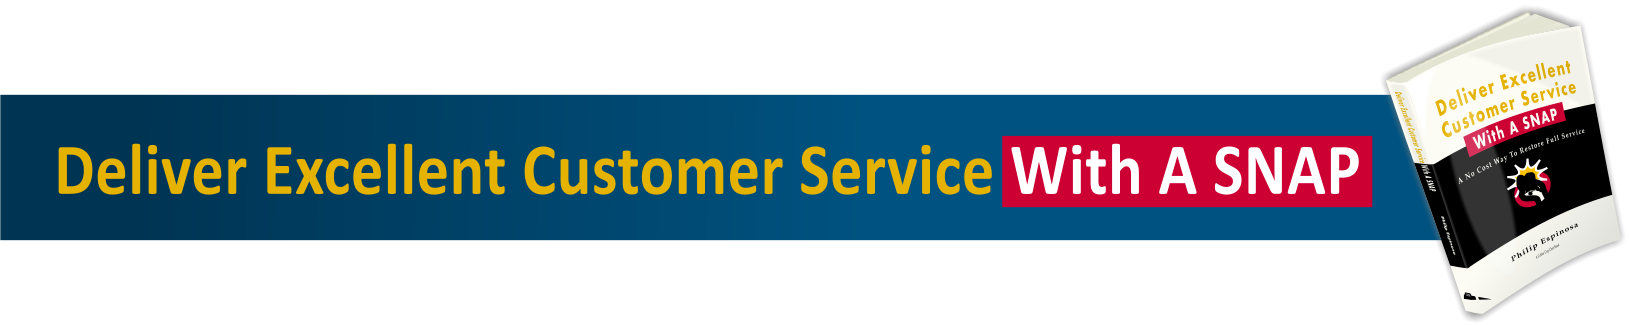 Deliver excellent customer service